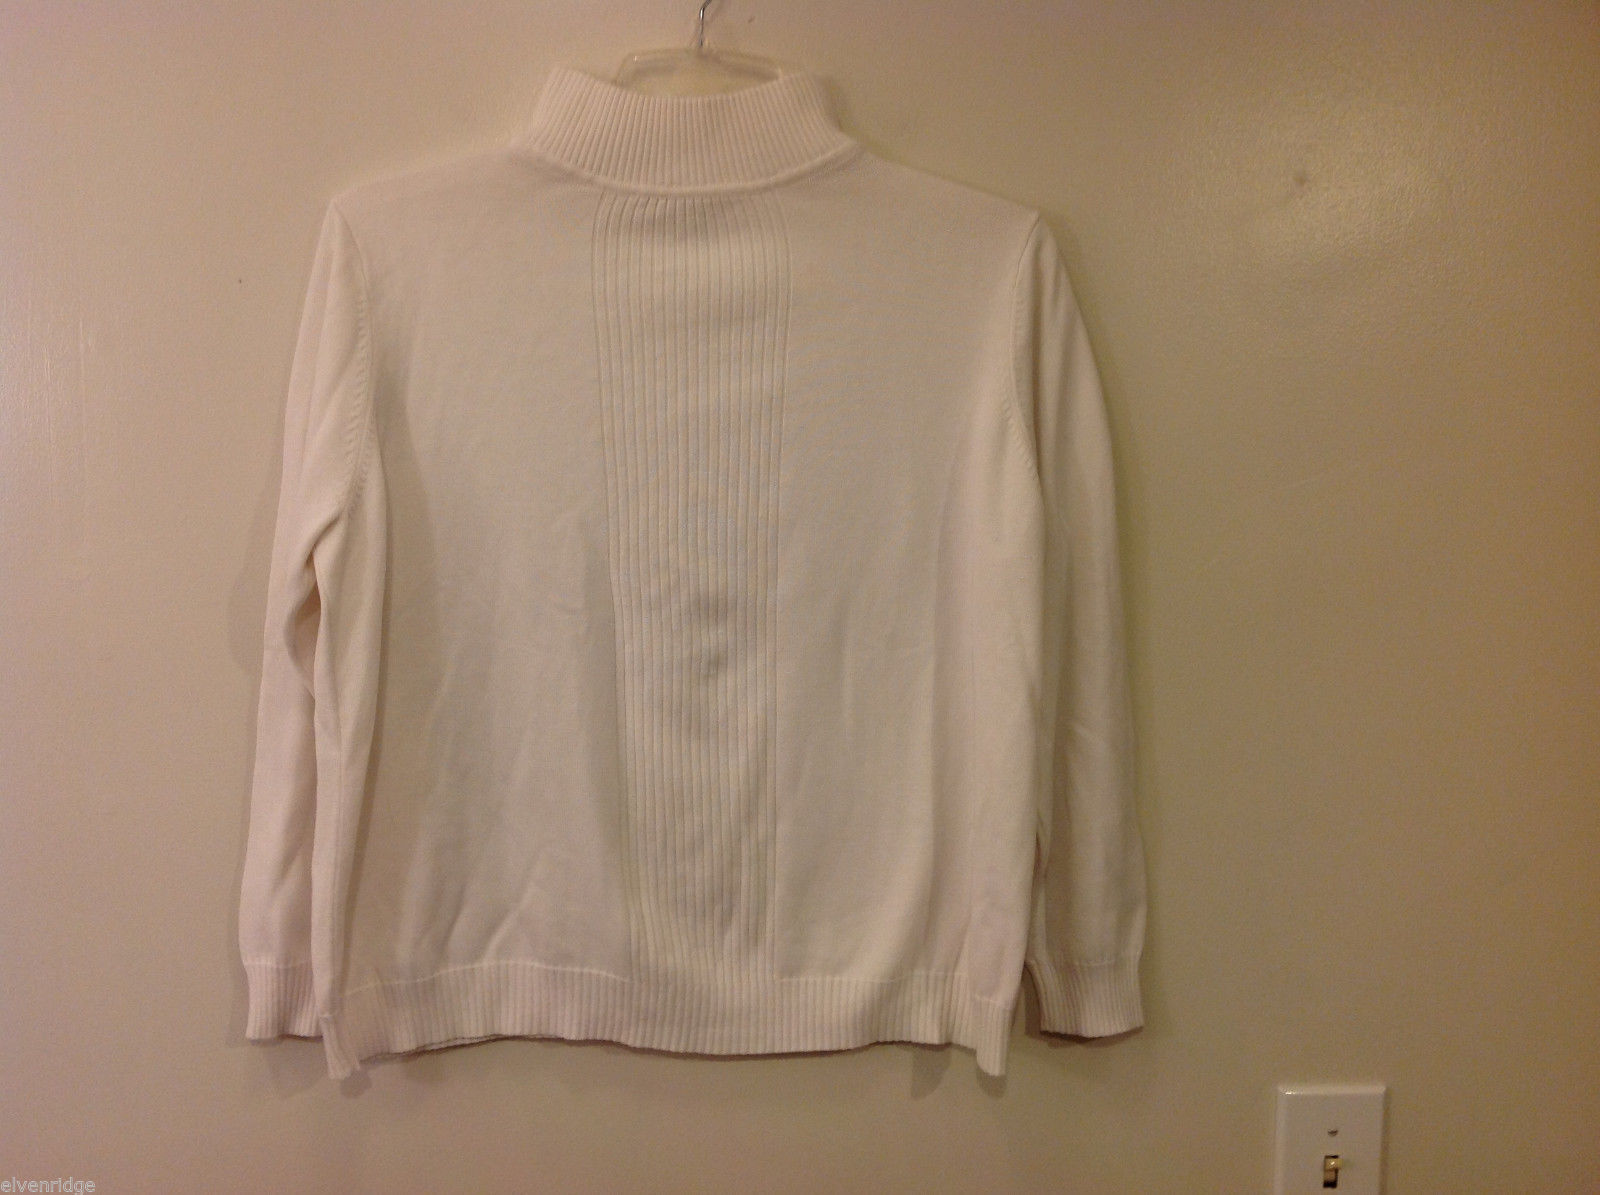 Women's Plus Size 22-24 Turtleneck Sweater Natural White Ribbed Trim dressbarn